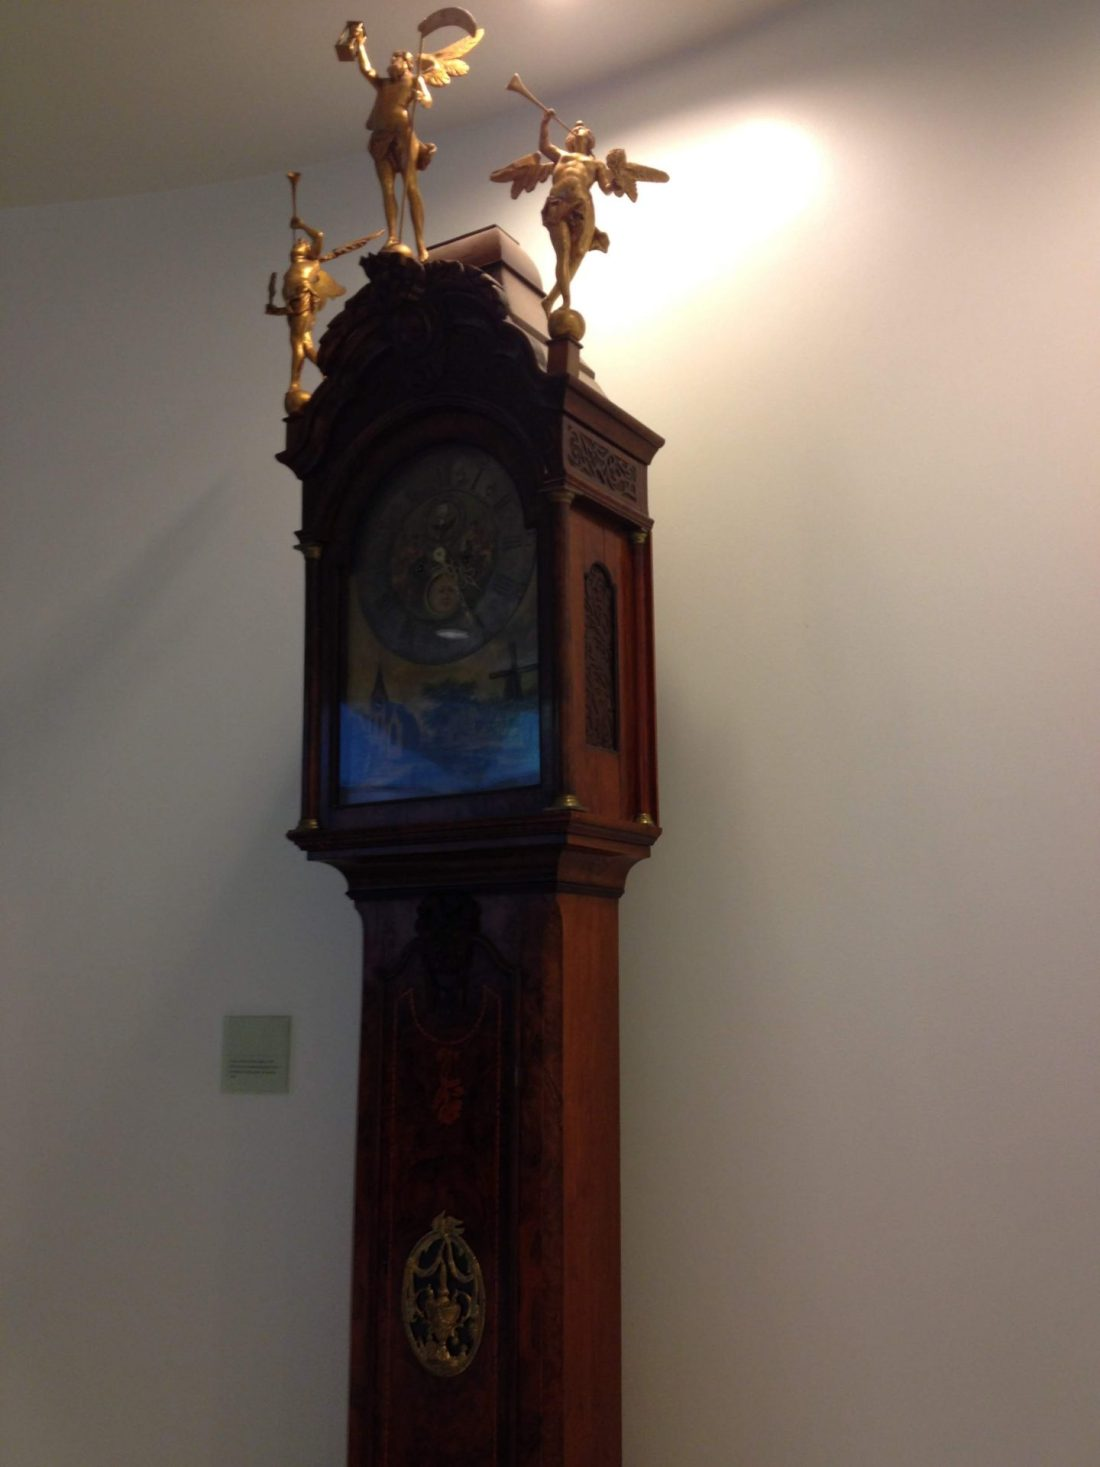 Grandfather clock in the Australian Parliament House, Canberra